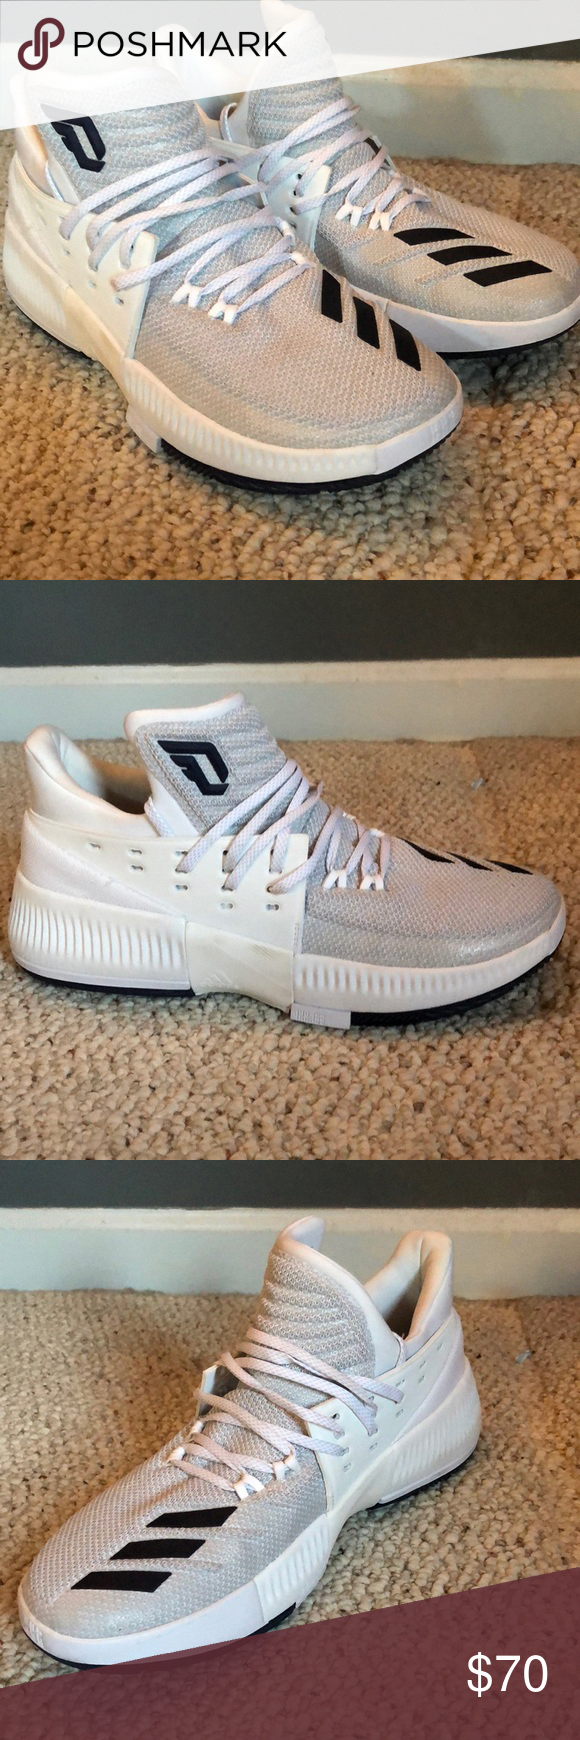 NEW  Adidas Damian Lillard Basketball Shoes New and never worn for training  or competition. White and navy low tops. Men s Size 9.5 adidas Shoes  Athletic ... e86261c4a